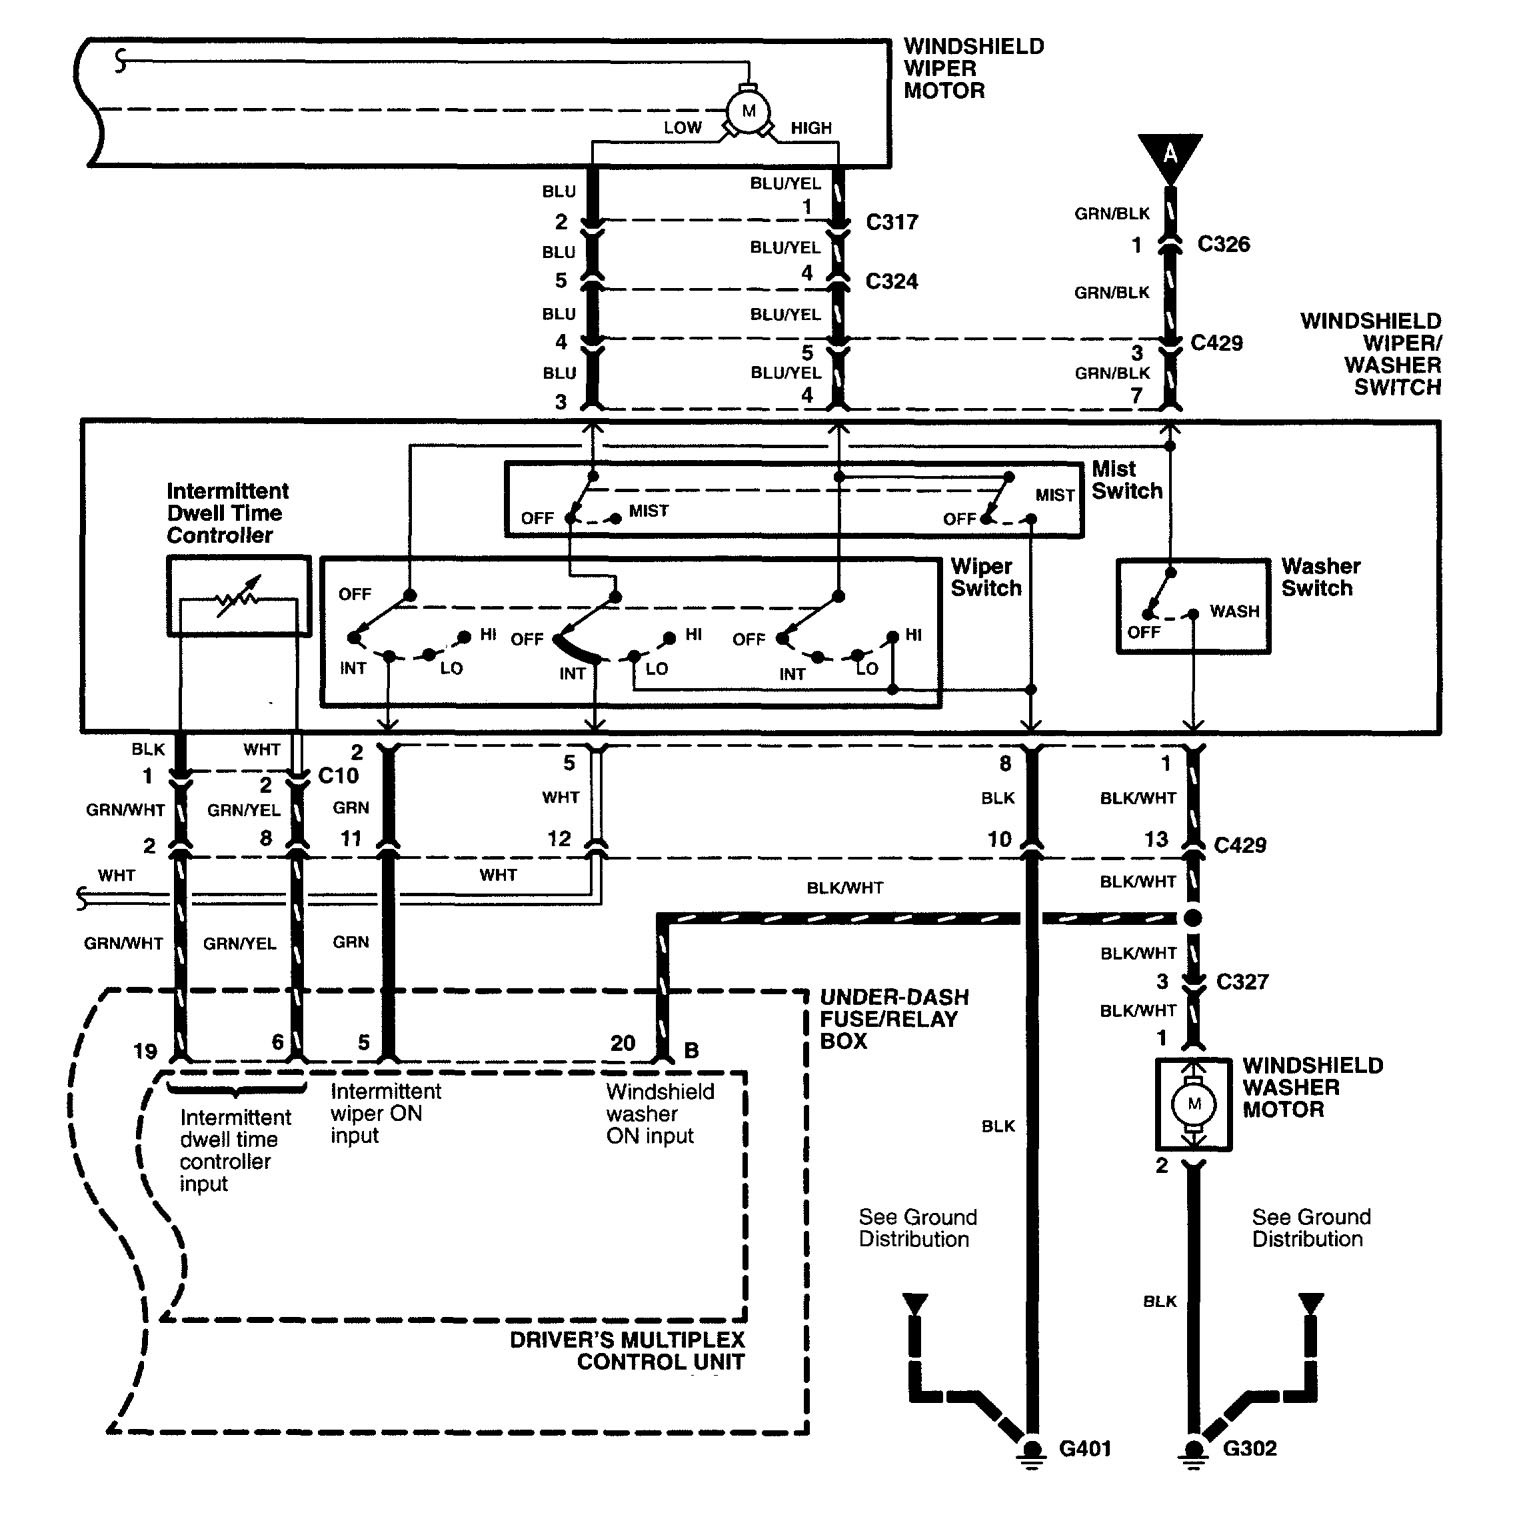 hight resolution of 1964 mitsubishi diamante fuse box diagram wiring library 3000gt fuse box diagram 1964 mitsubishi diamante fuse box diagram